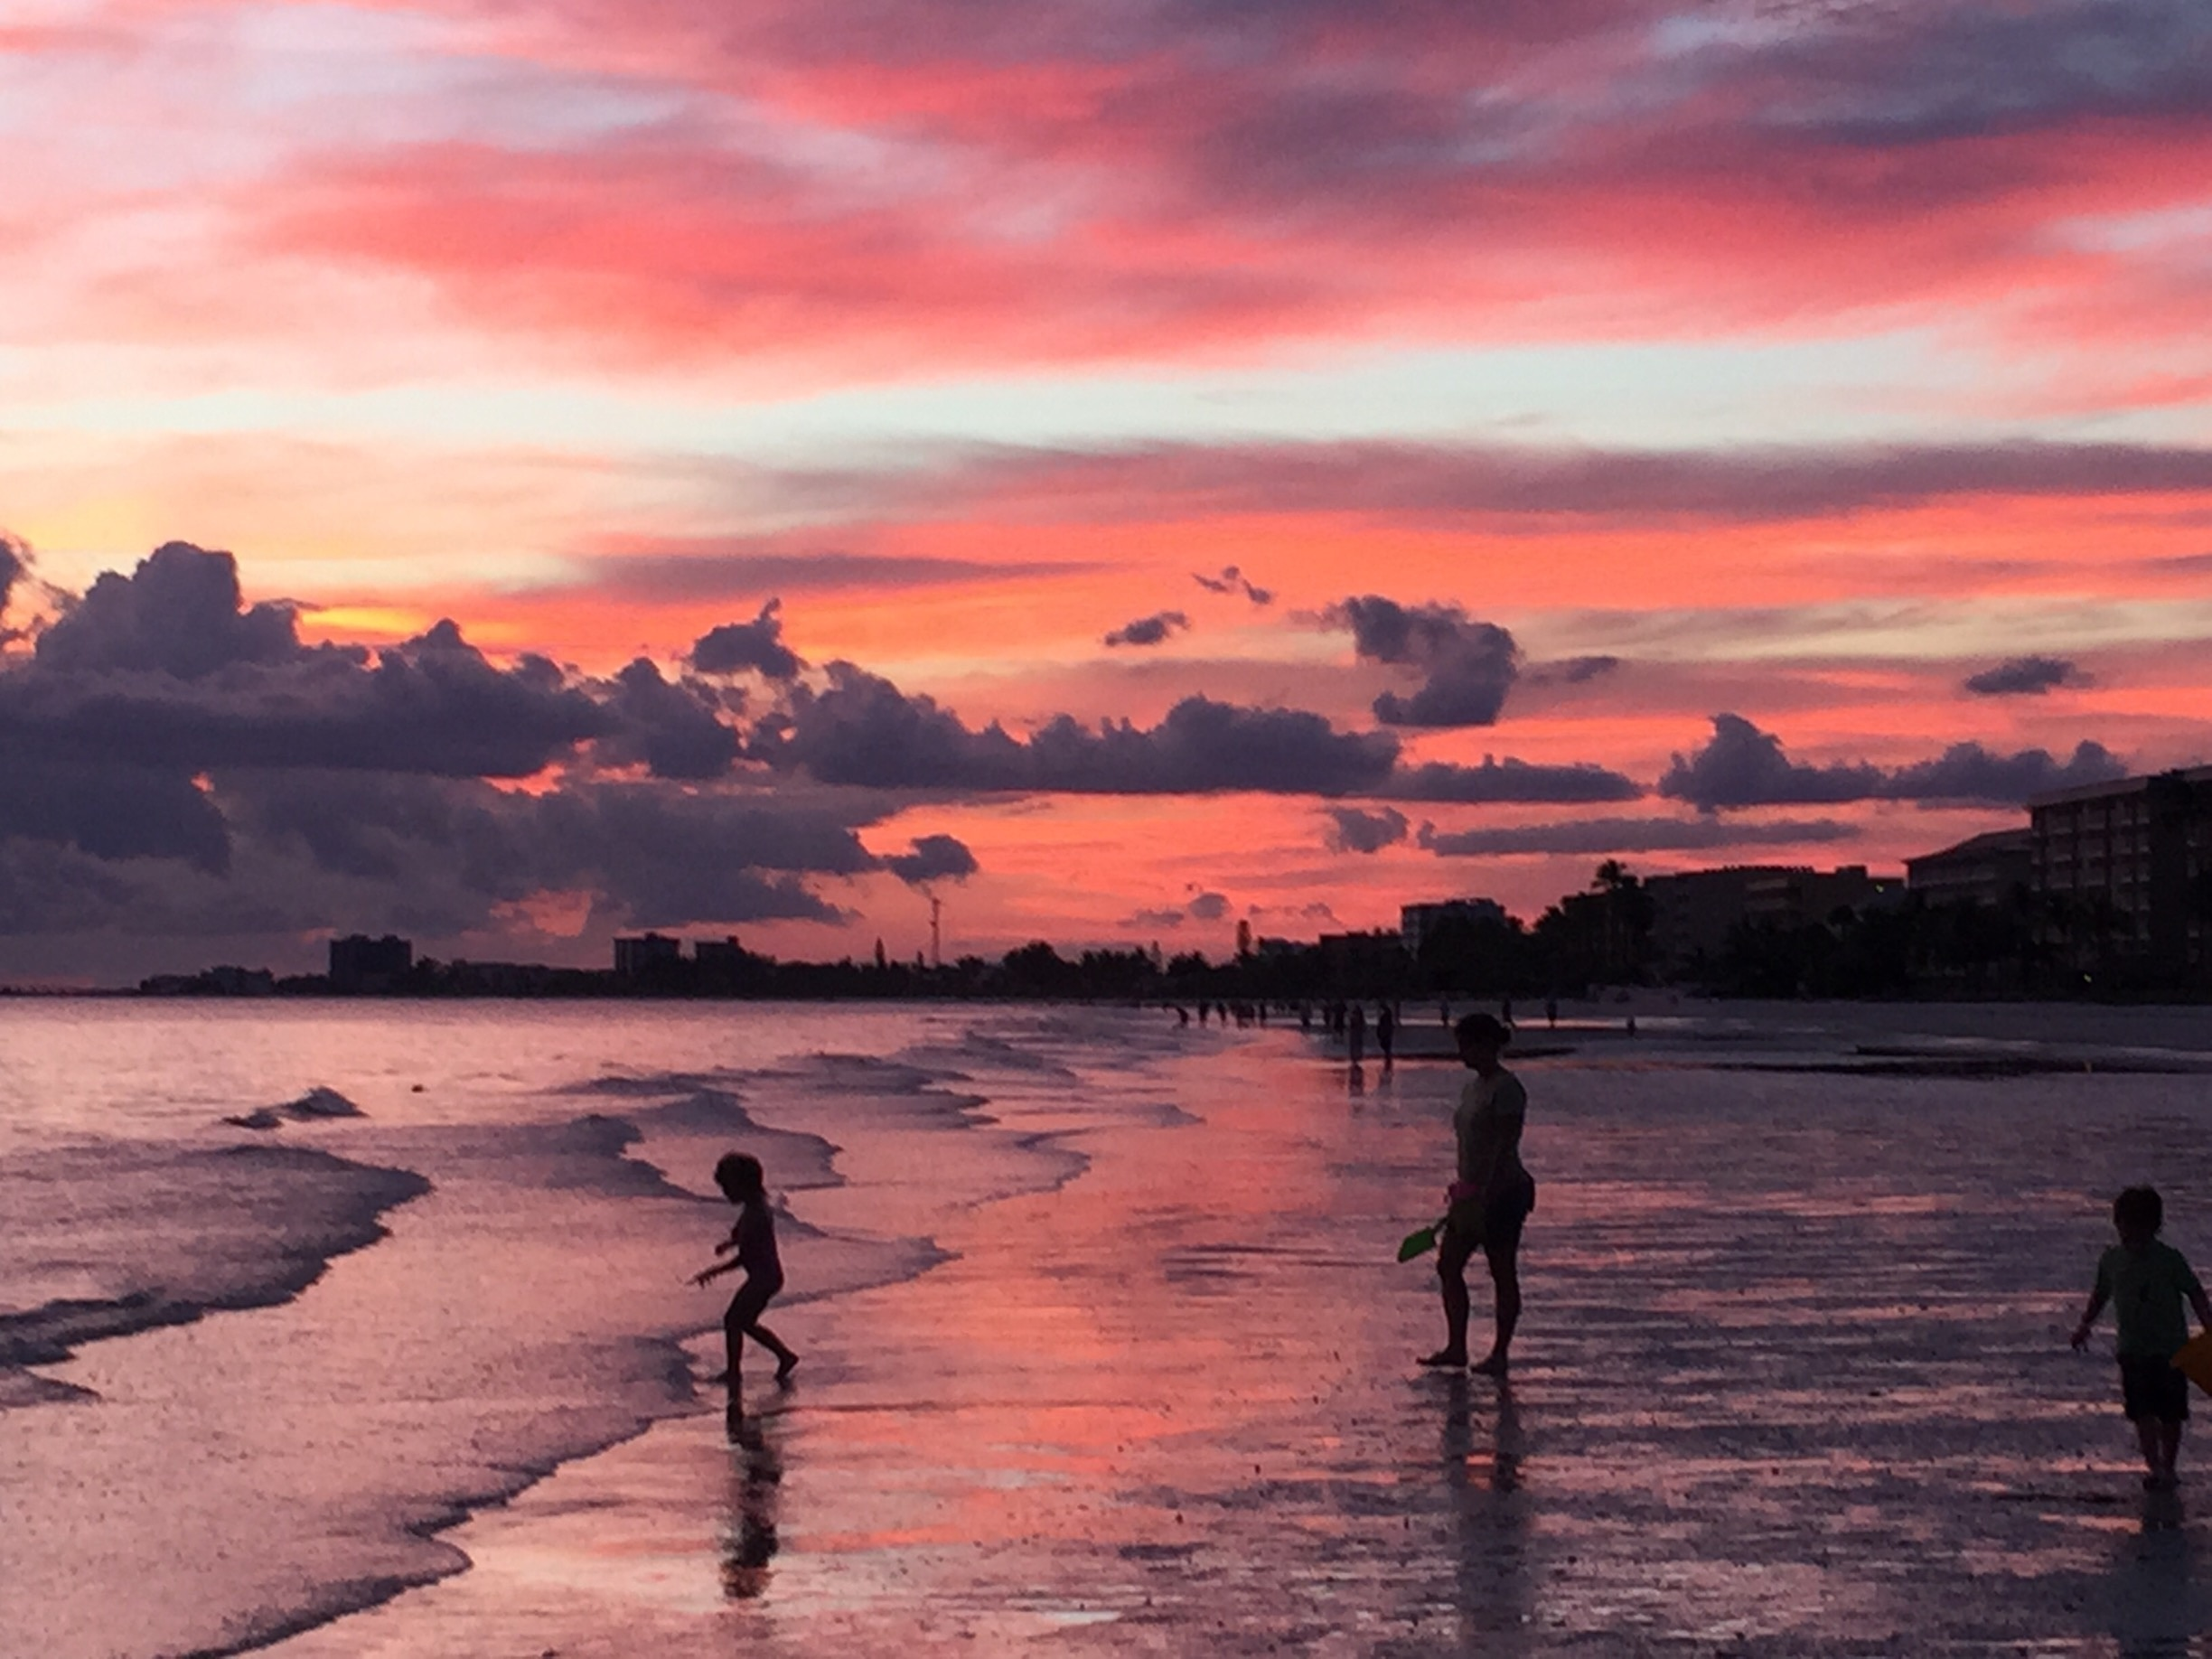 Mid Island, Fort Myers Beach, Florida, United States of America